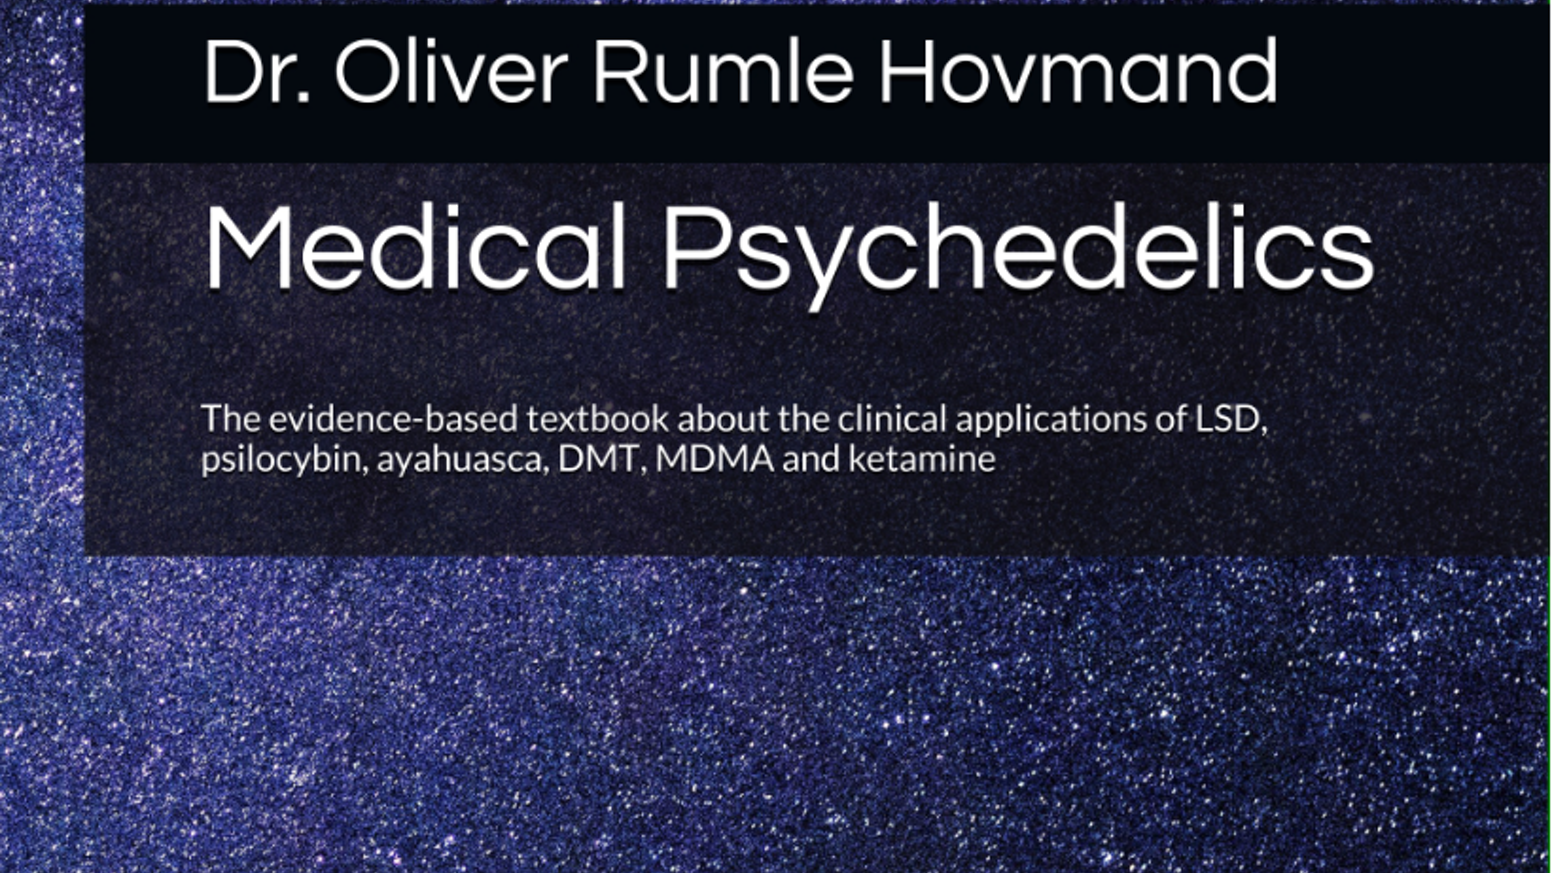 This text presents an in-depth analysis of what is currently known about the possible medical applications of psychedelics